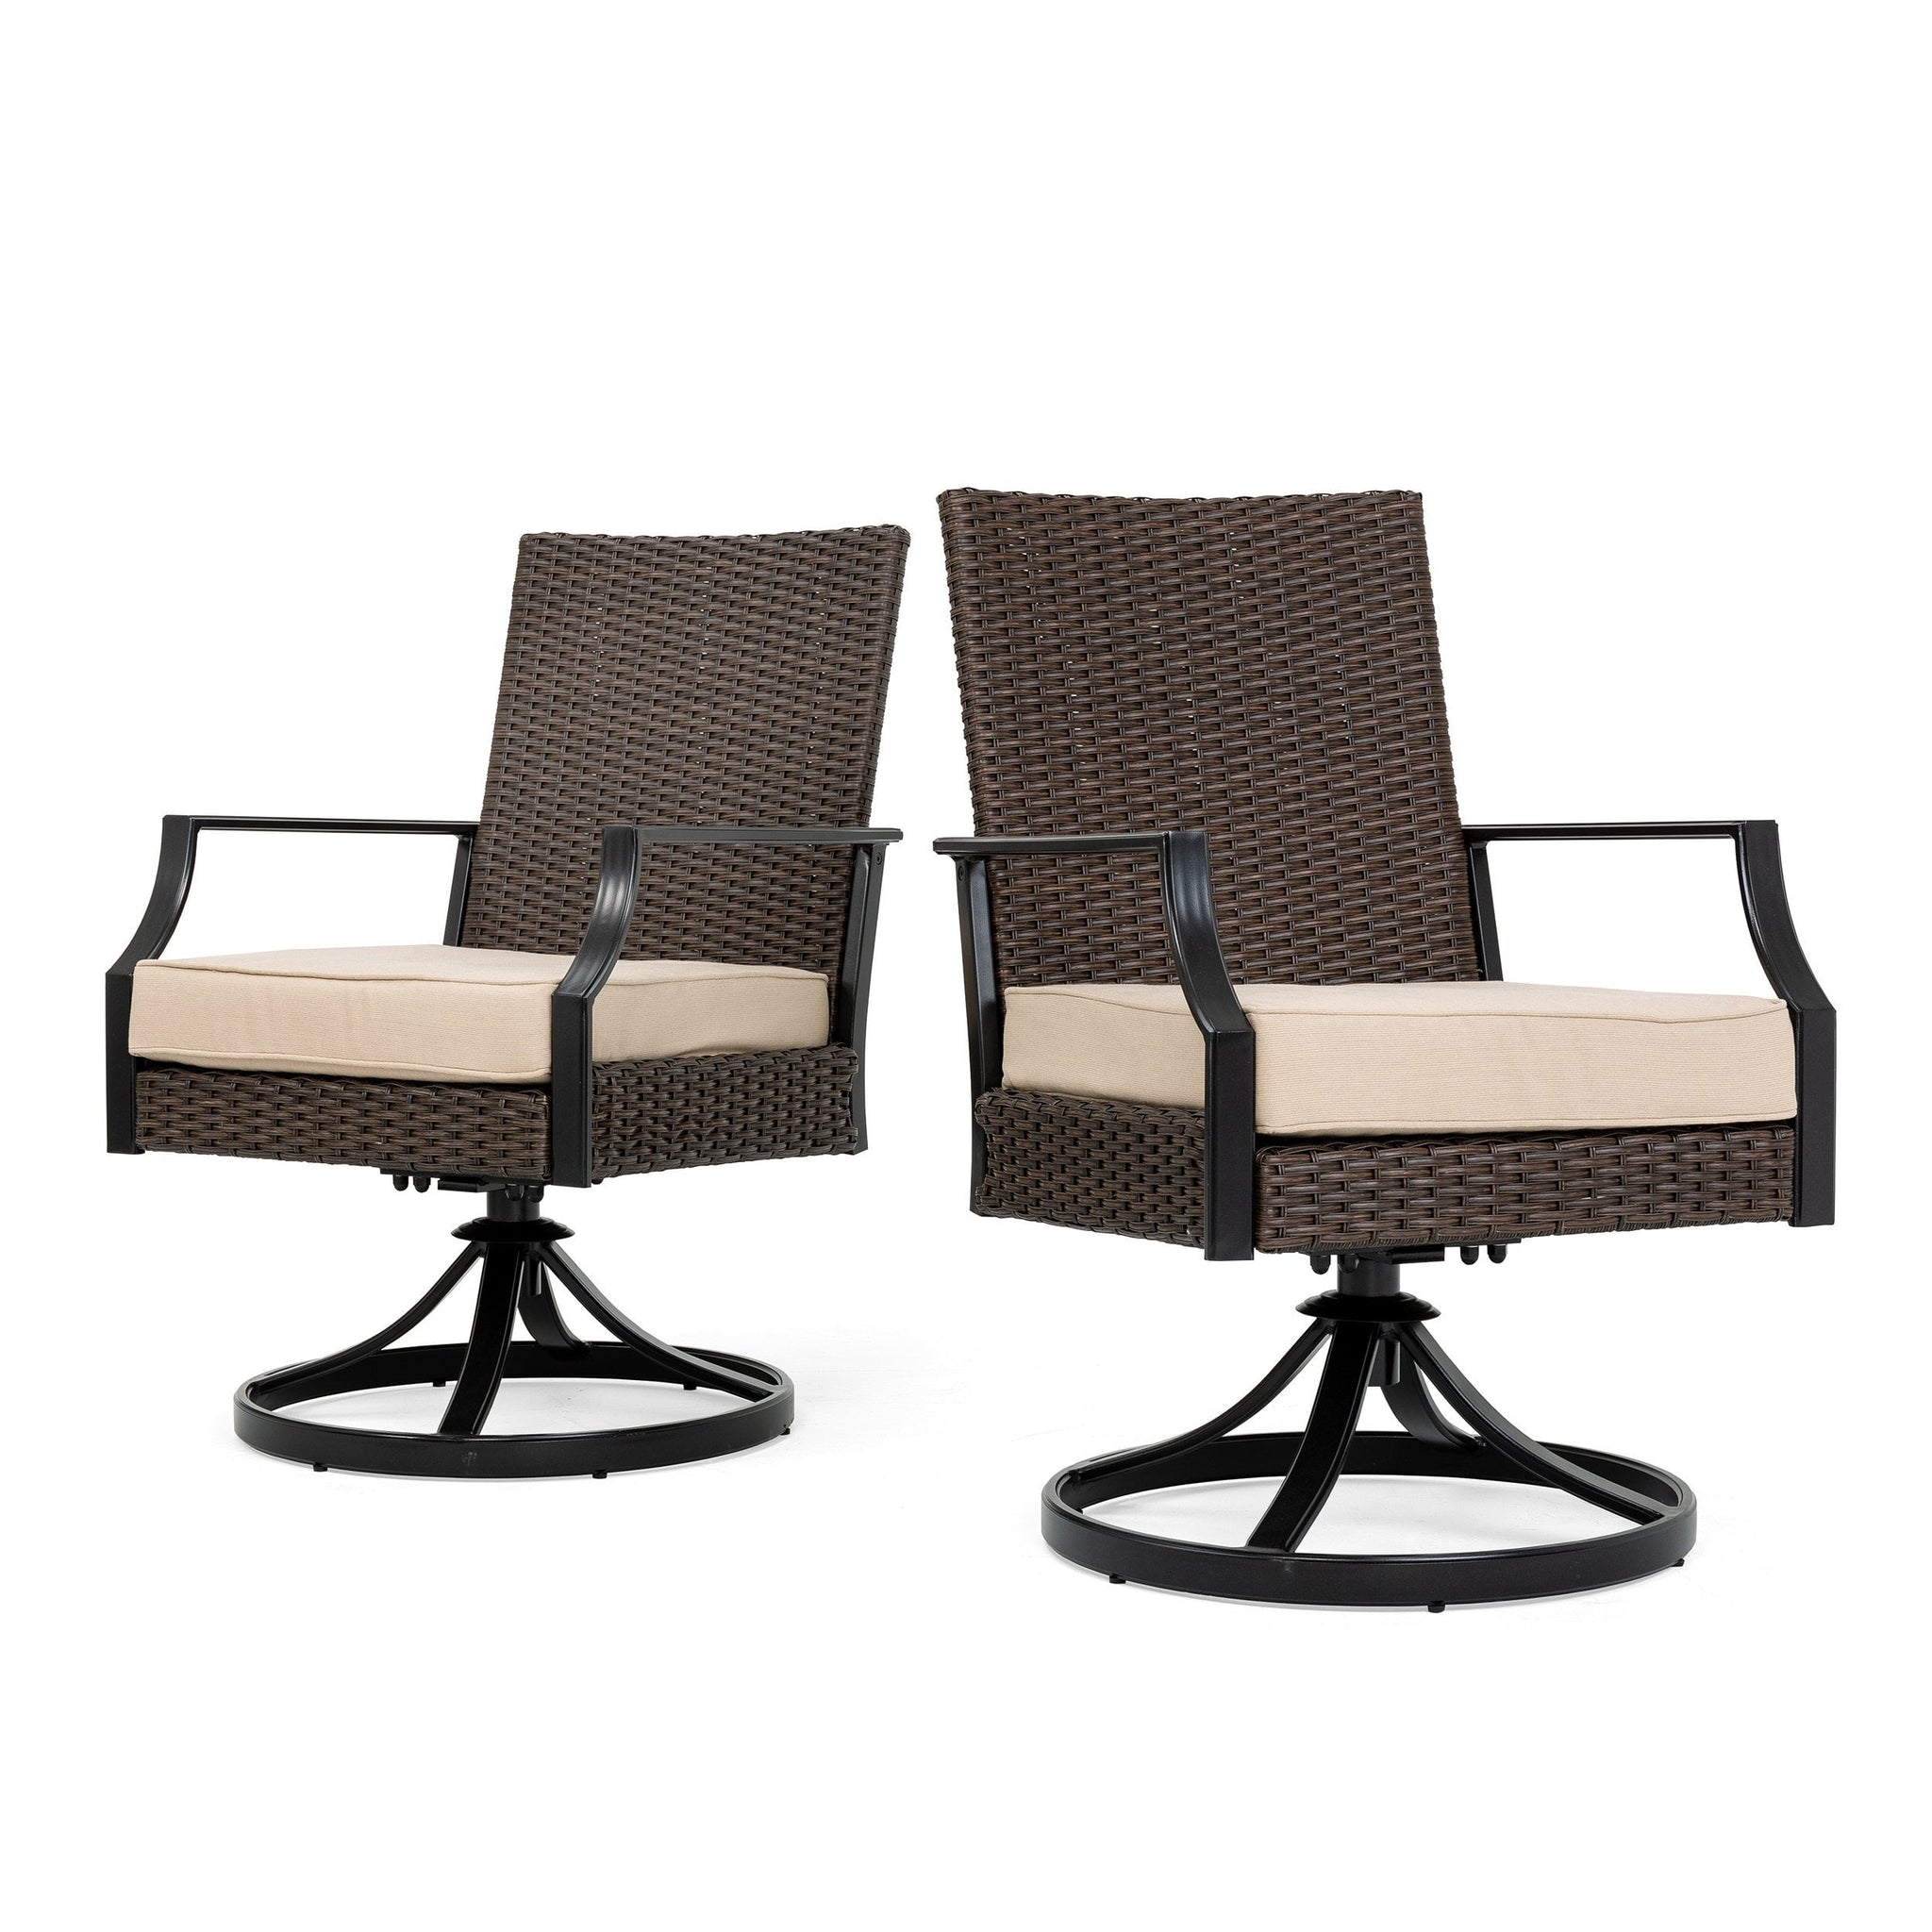 Awe Inspiring Addyson Woven Cushioned Swivel Dining Chair 2 Pack La Z Machost Co Dining Chair Design Ideas Machostcouk